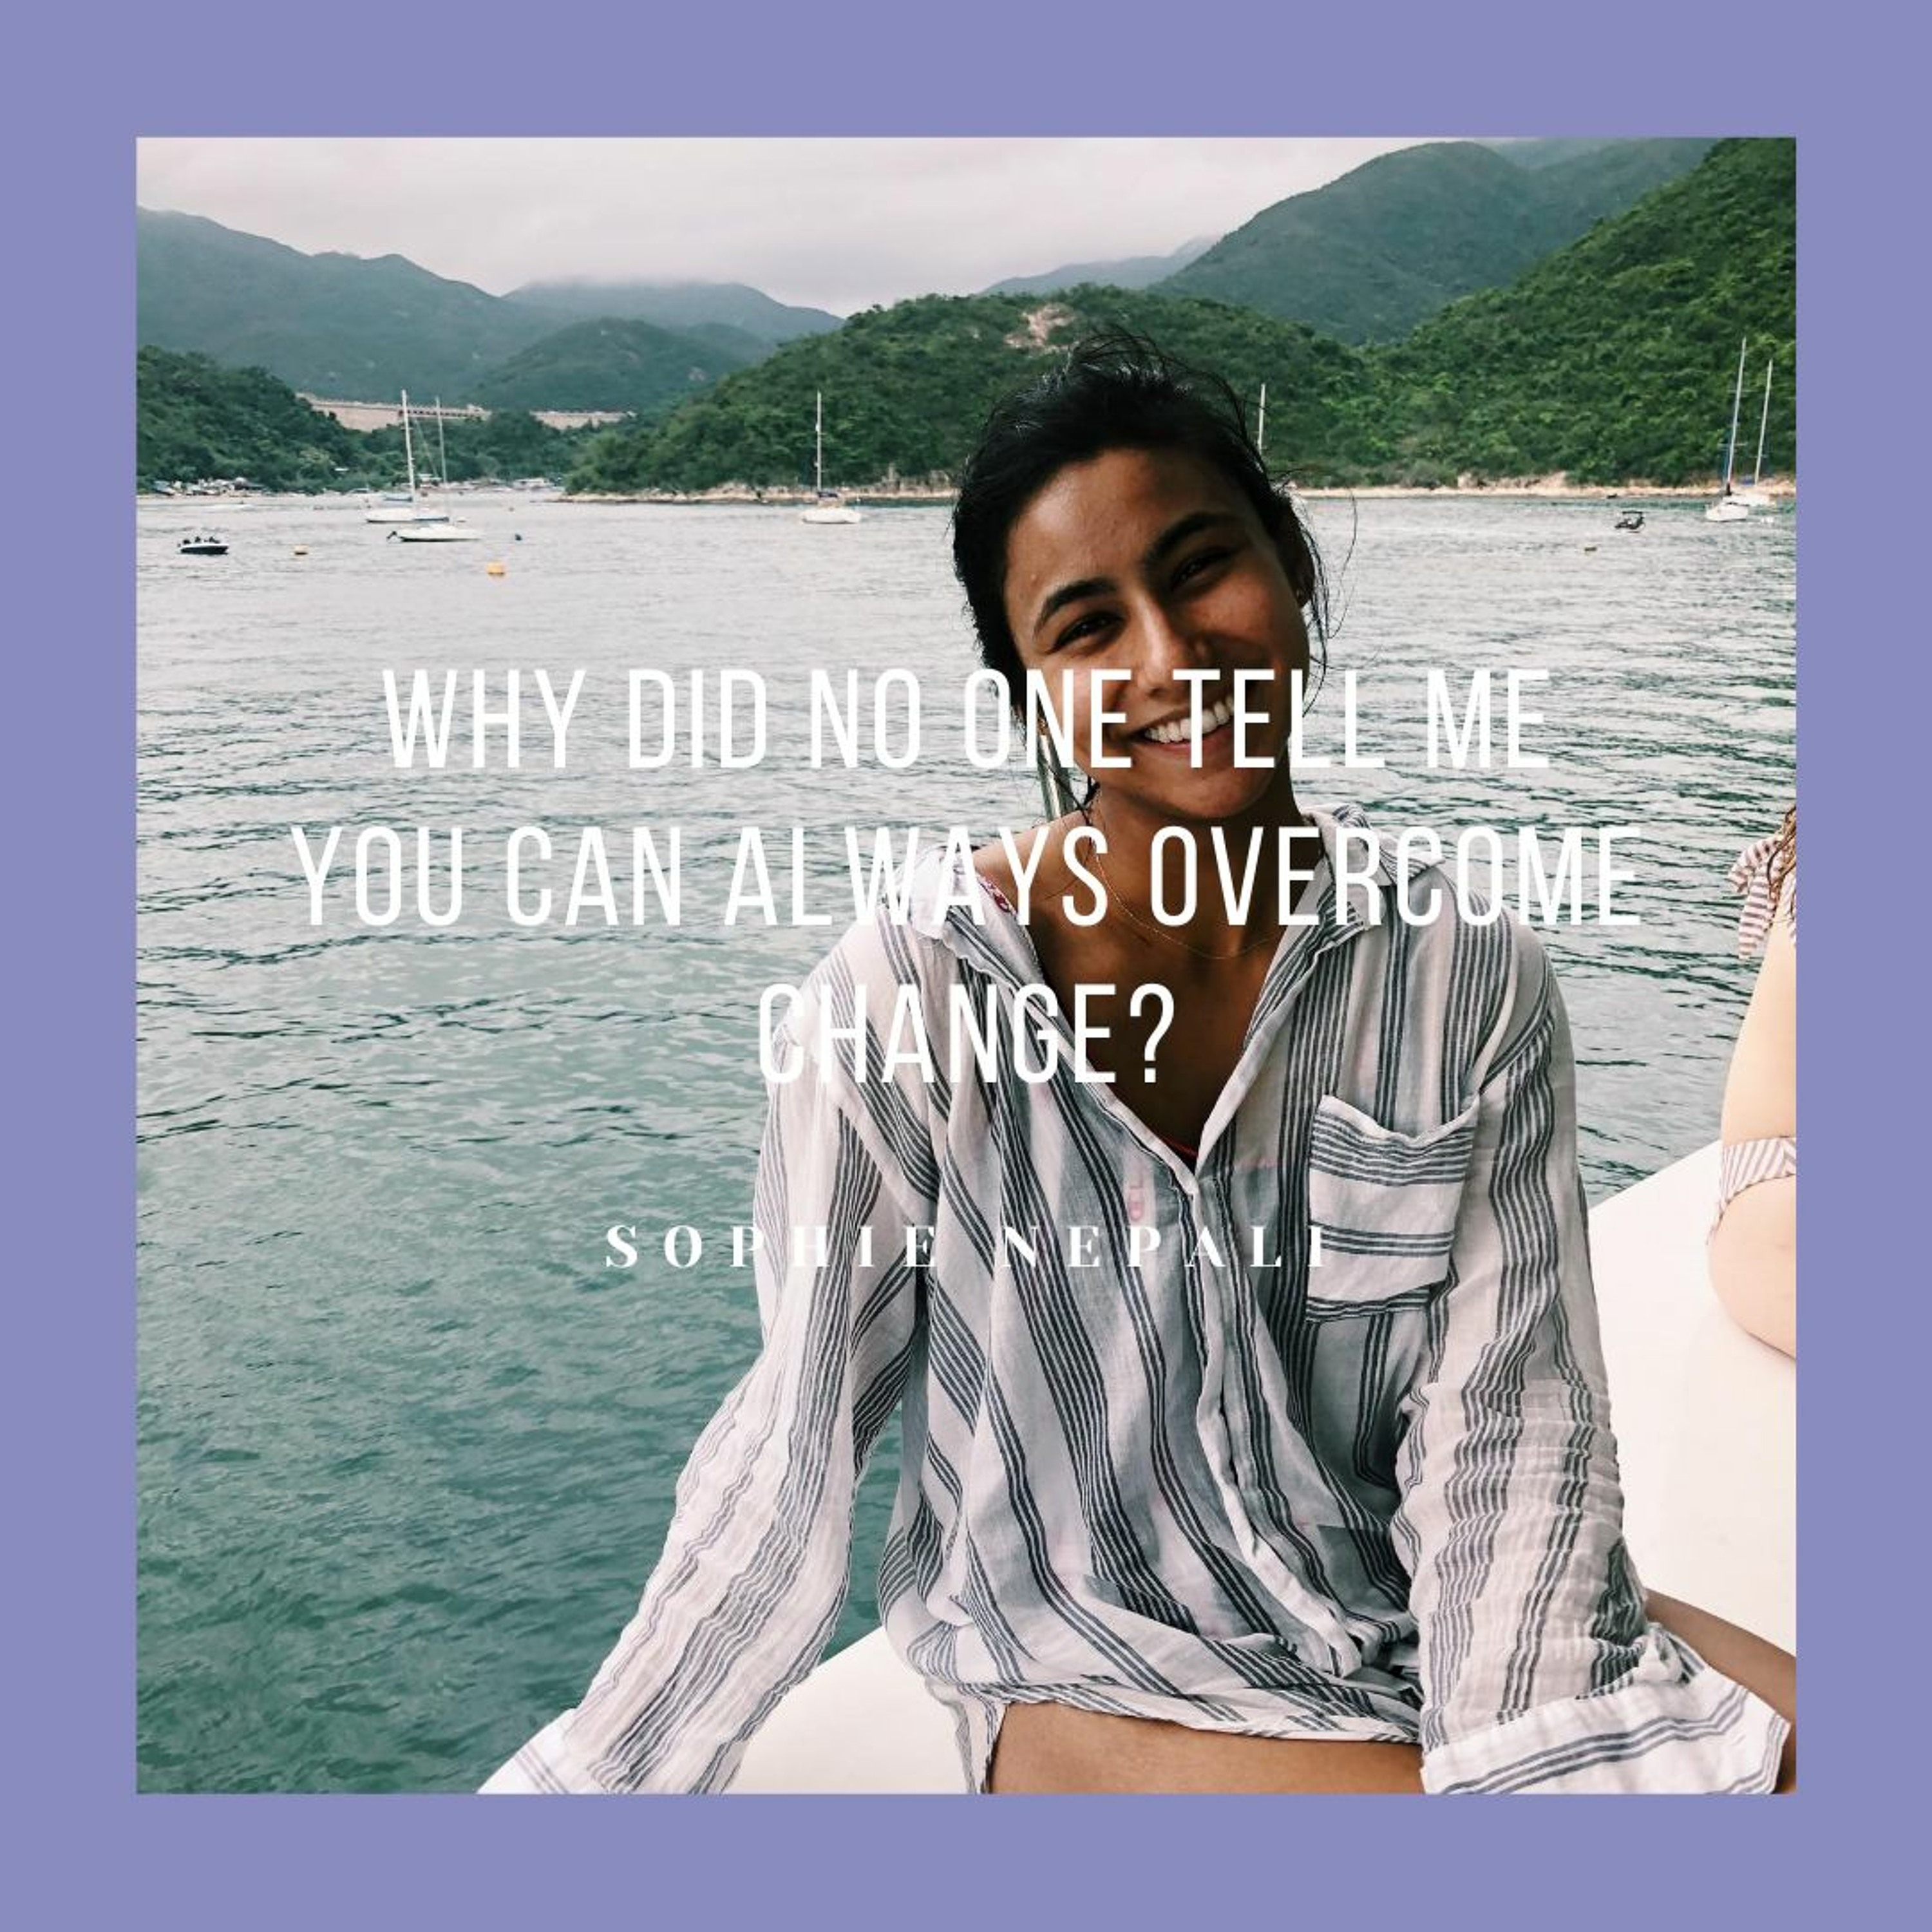 #4 Why did no one tell me you can always overcome change?